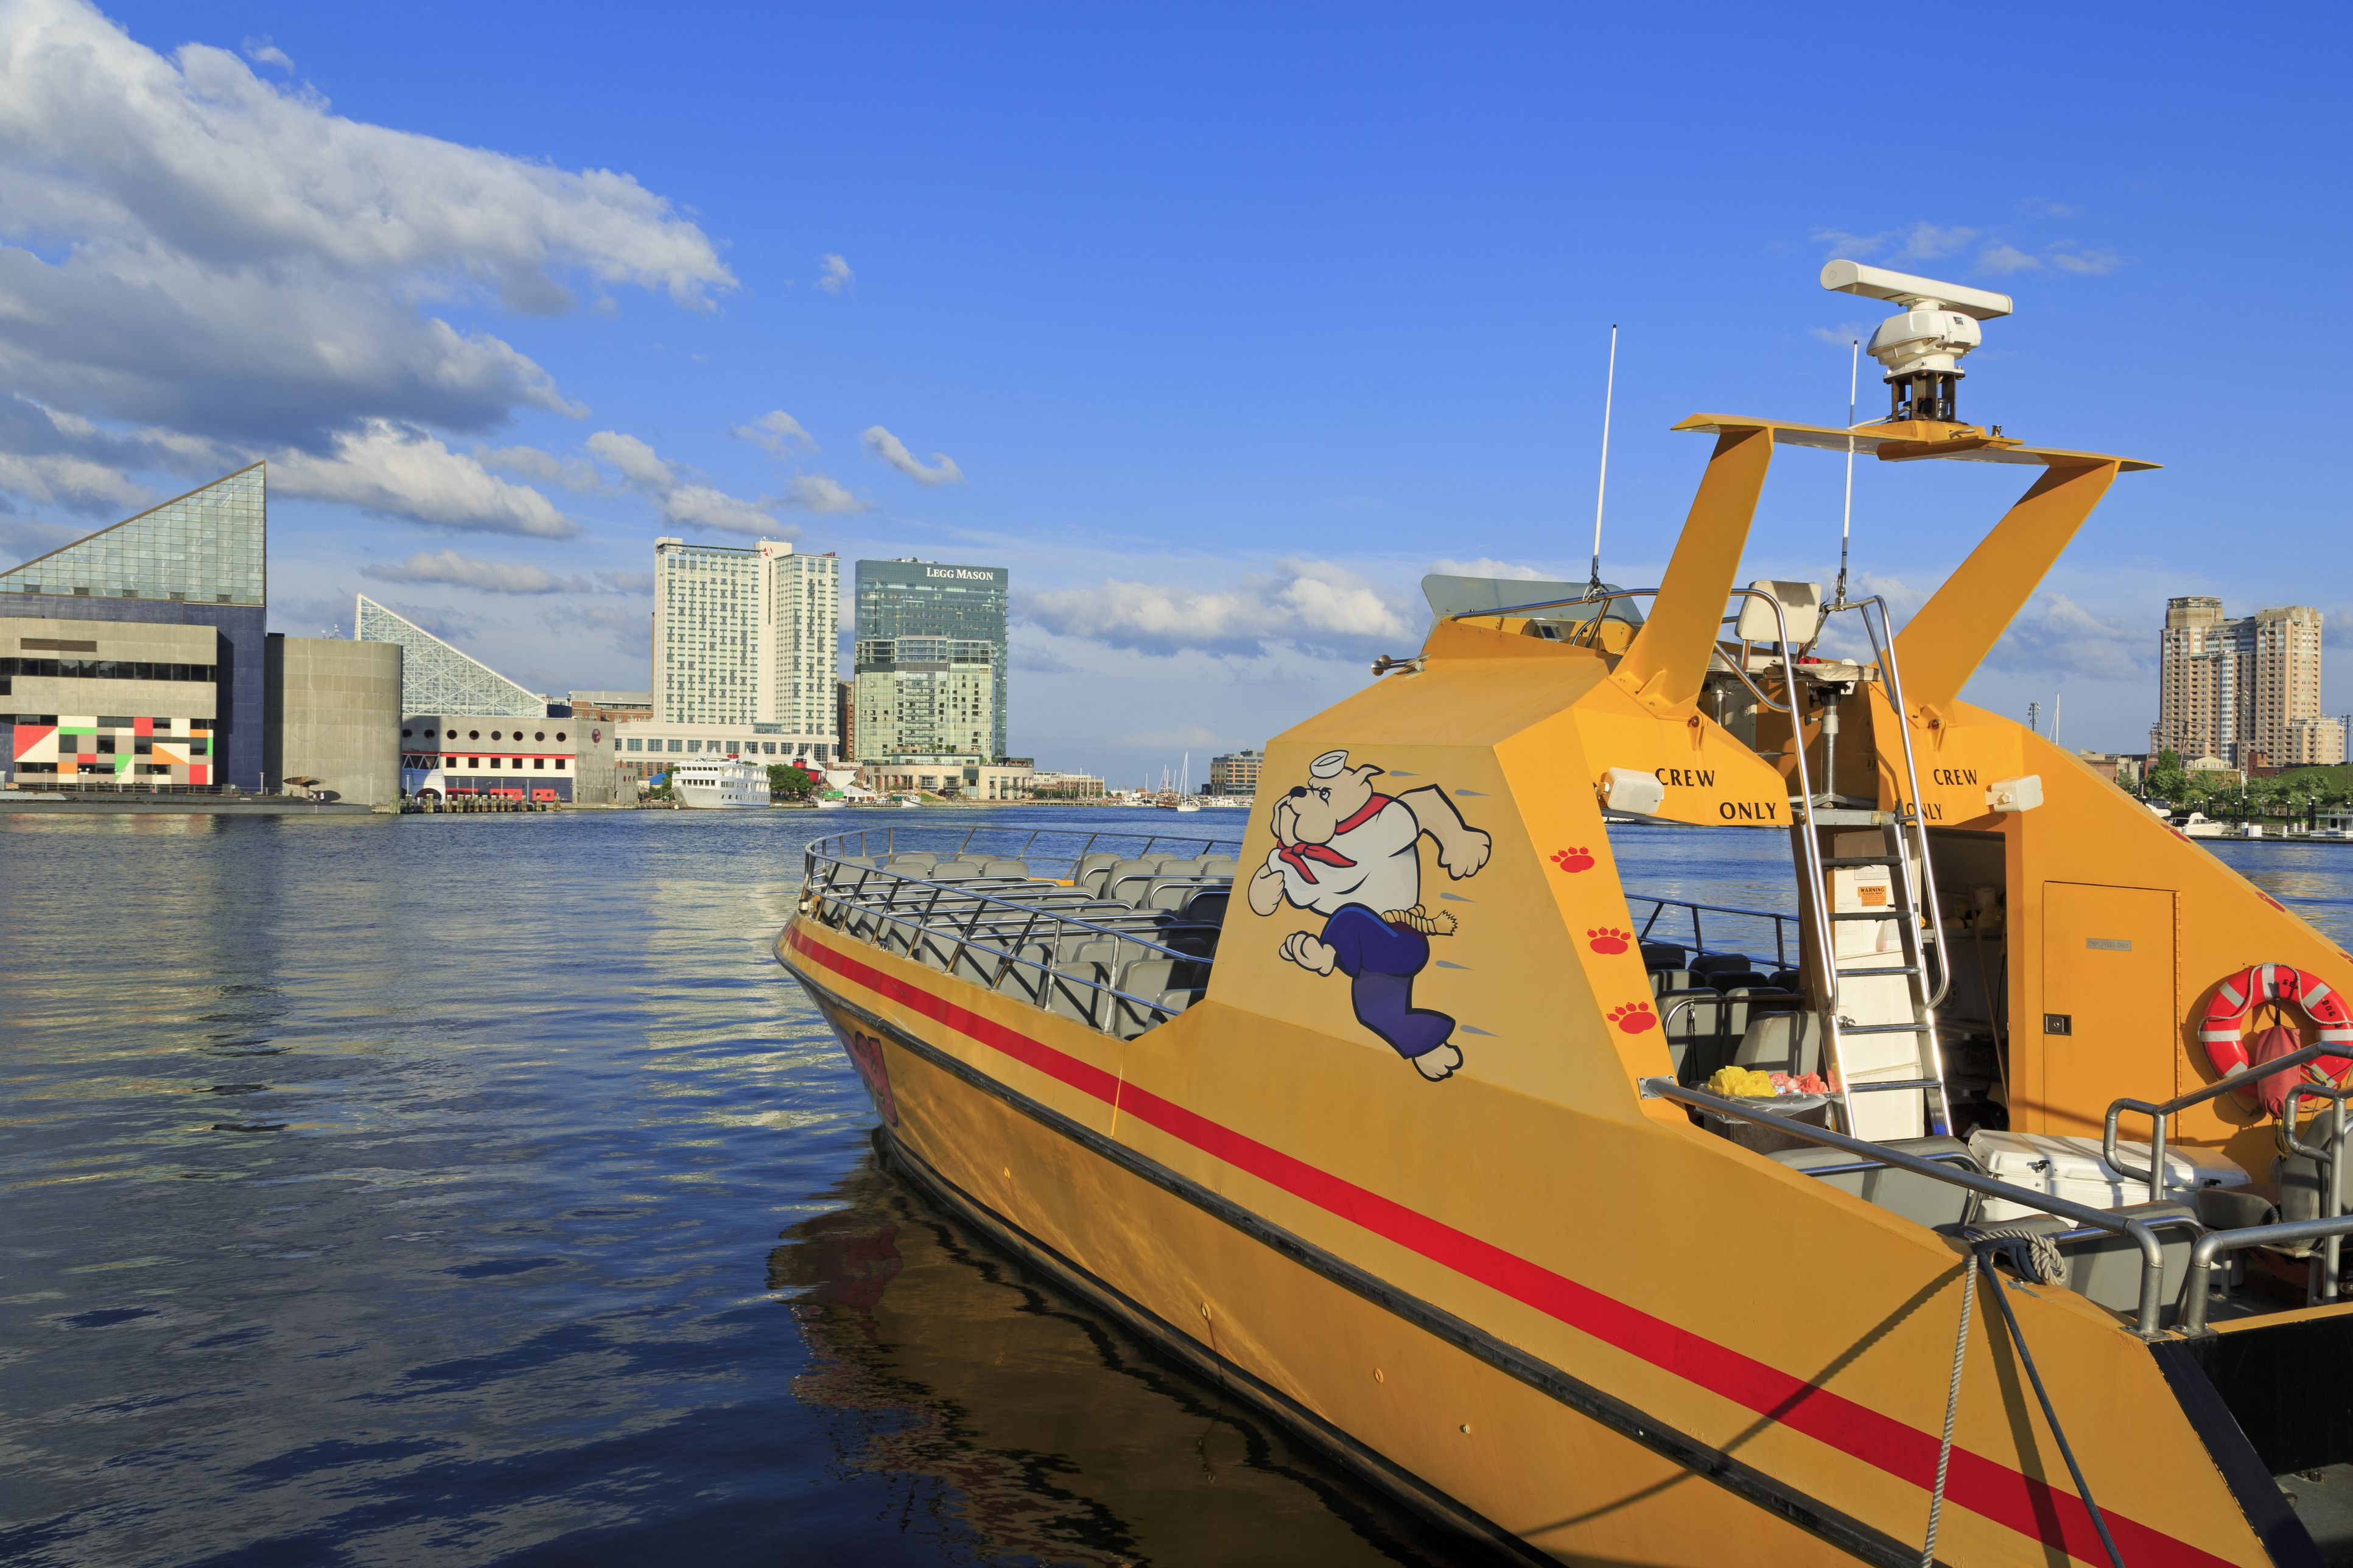 Things to do in baltimore 39 s inner harbor for Things to do in central park today